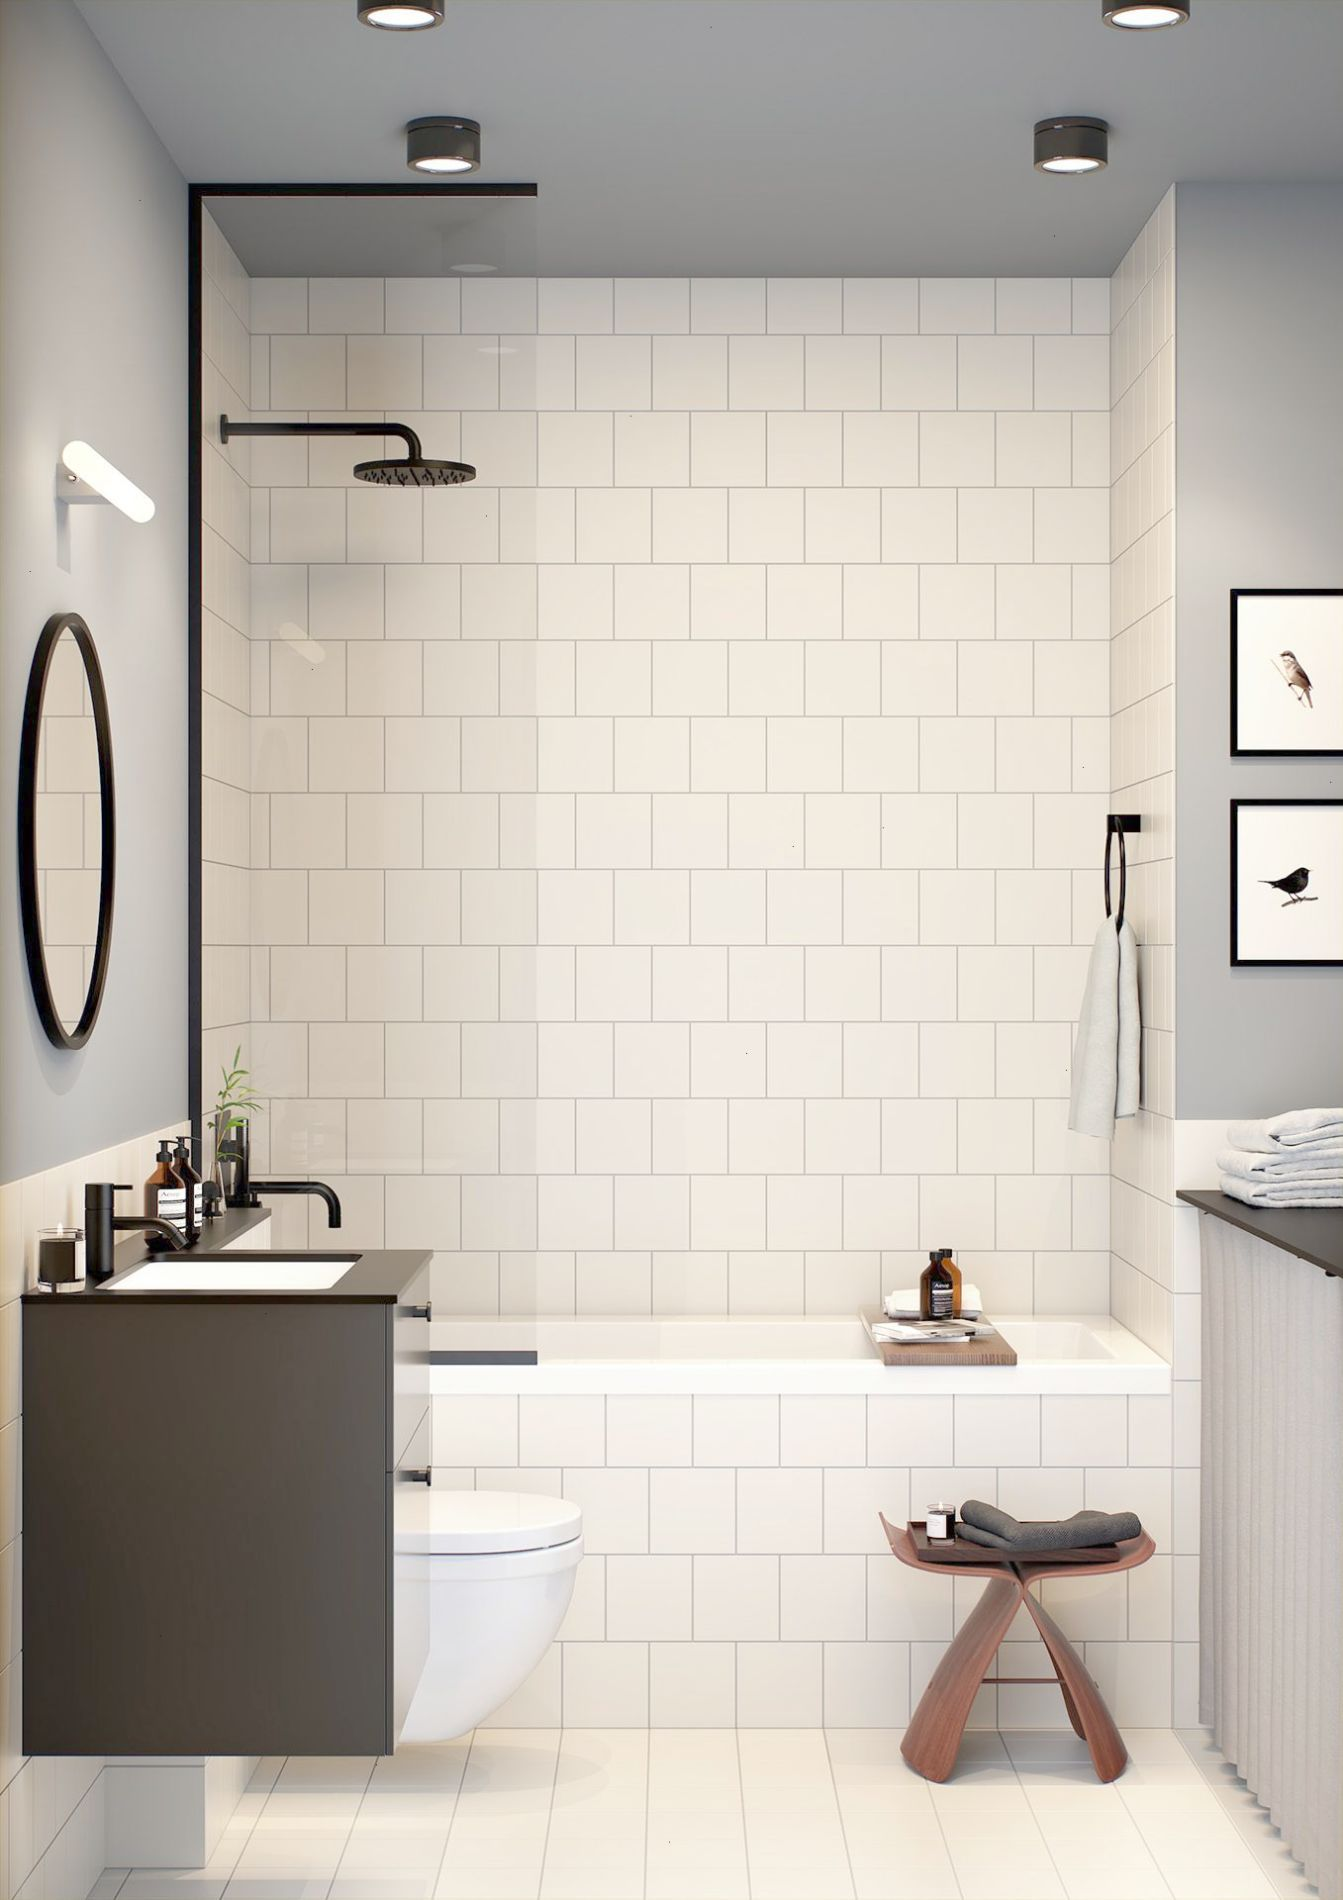 Amazing Bathroom Colors Ideas Pinterest Twitter Bathroom Design Small Modern Toilet And Bathroom Design Small Bathroom Remodel